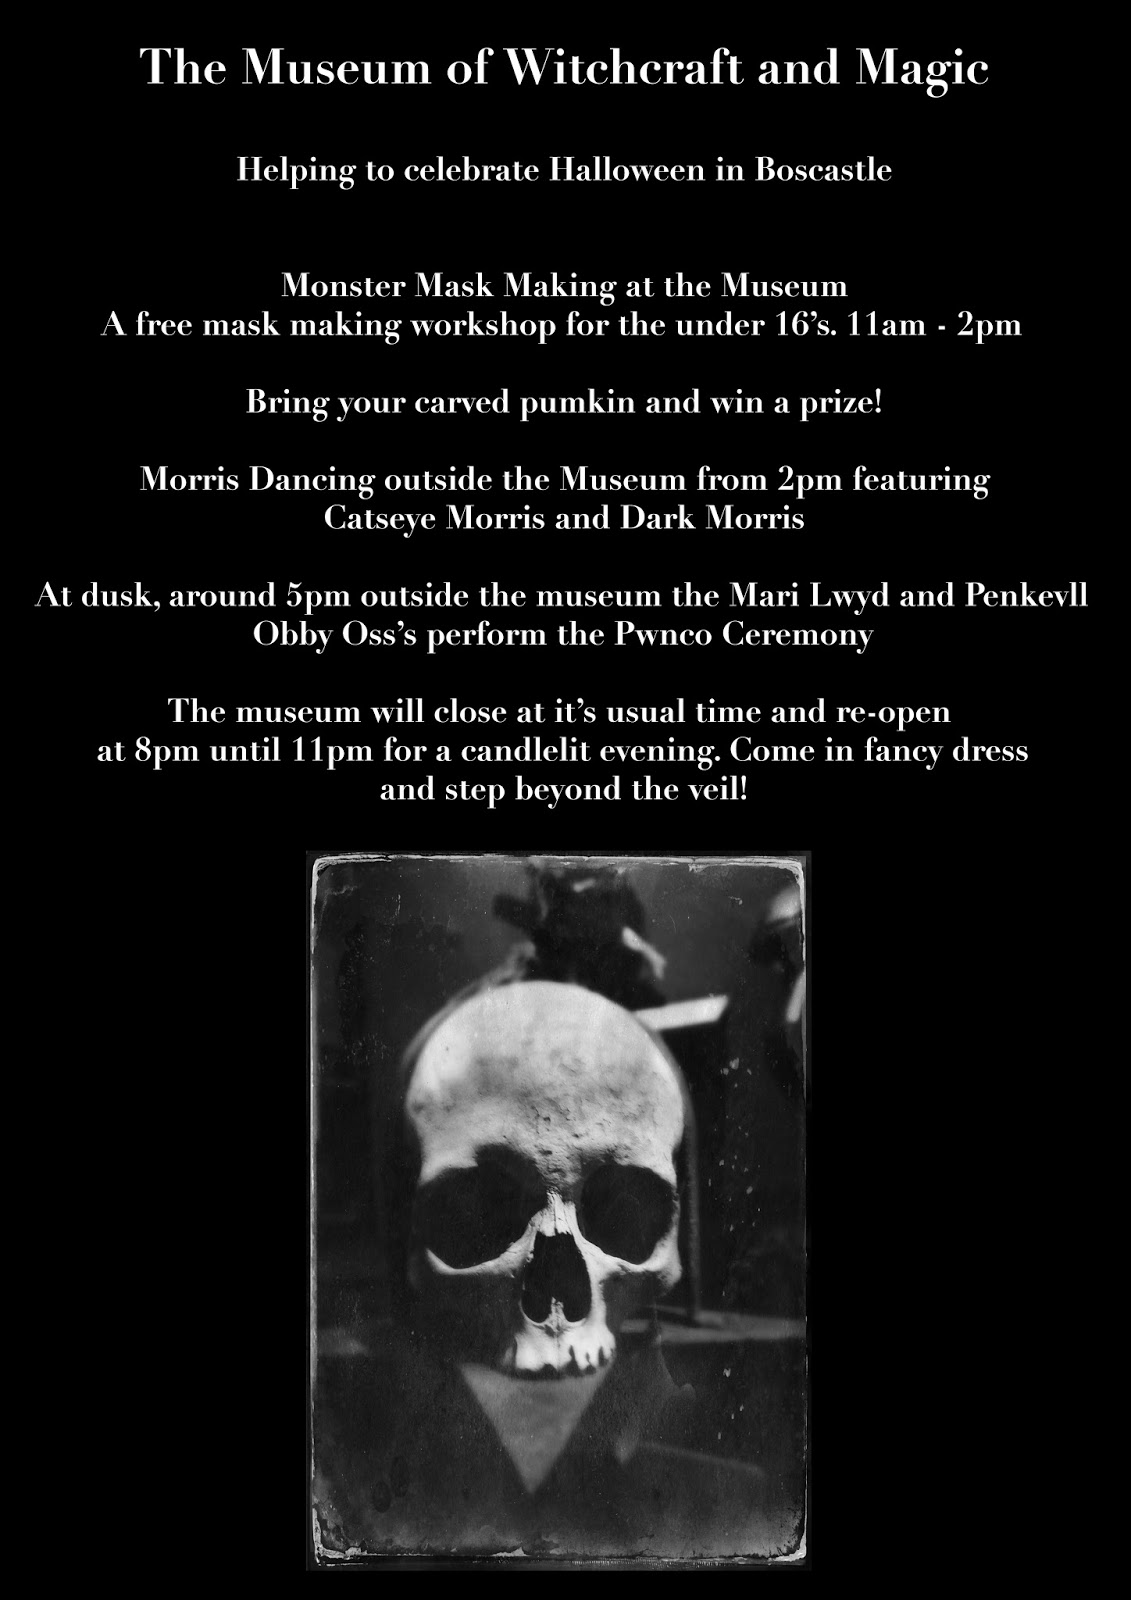 Museum Halloween event appears in lots of local media